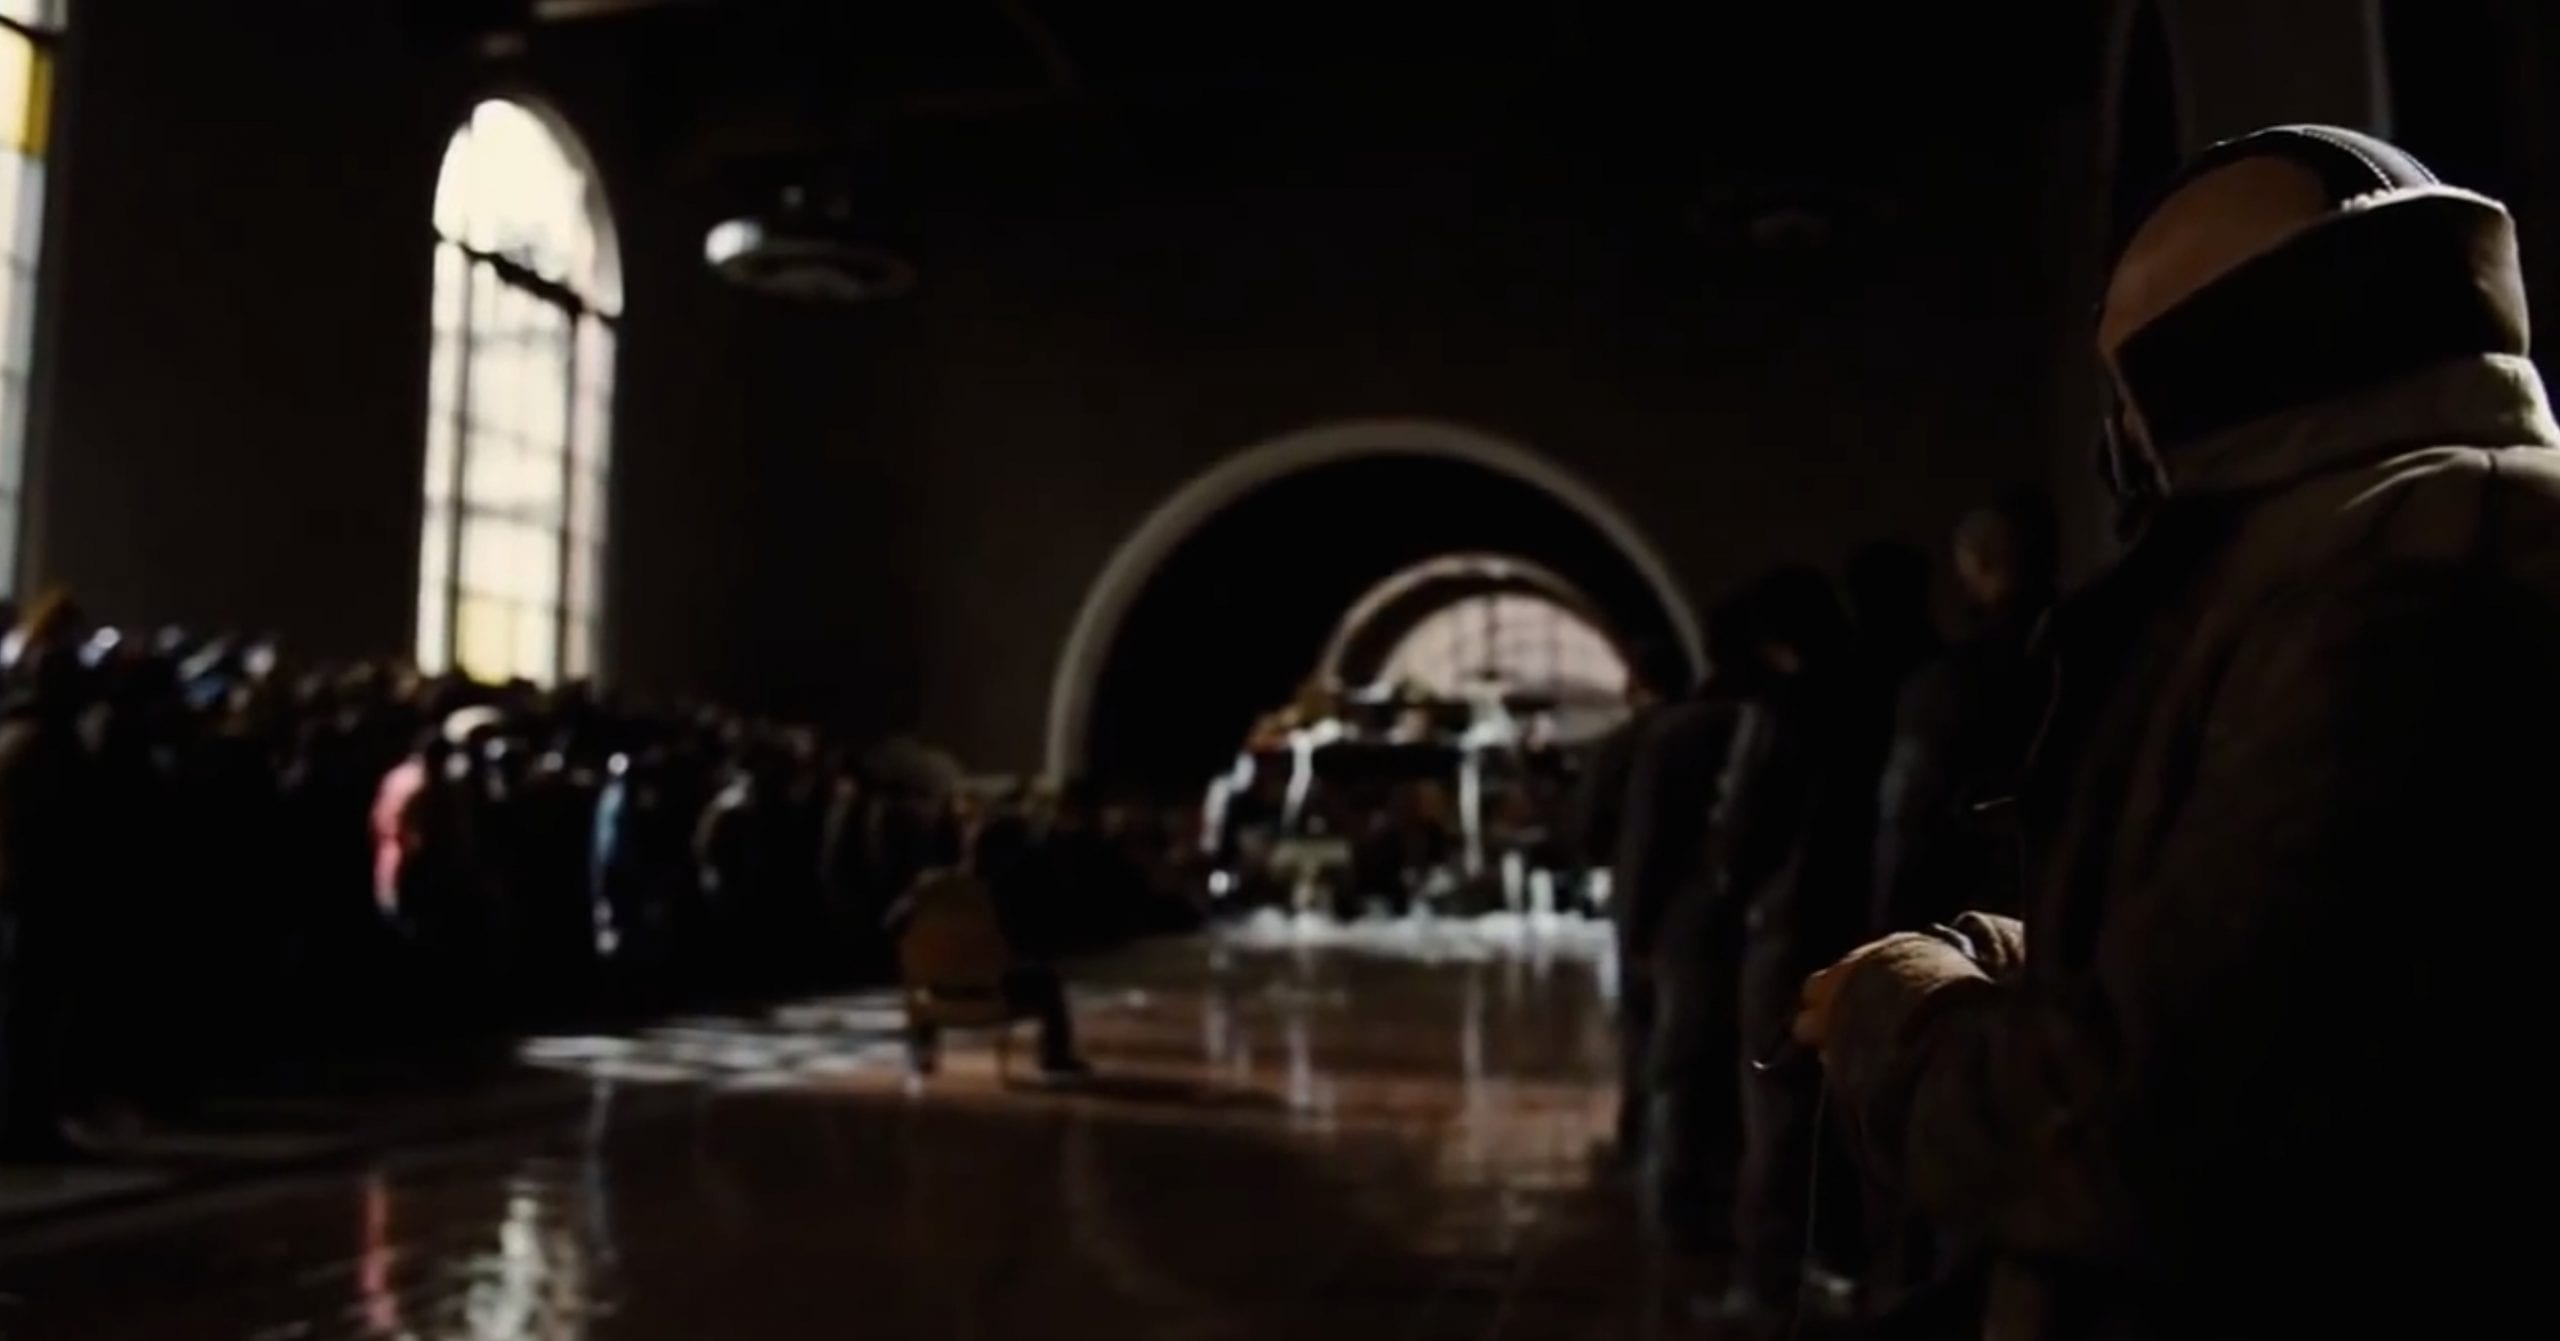 """A scene from the """"The Dark Knight Rises"""" that was filmed in the old ticket room  at Union Station. Credit: Warner Bros."""